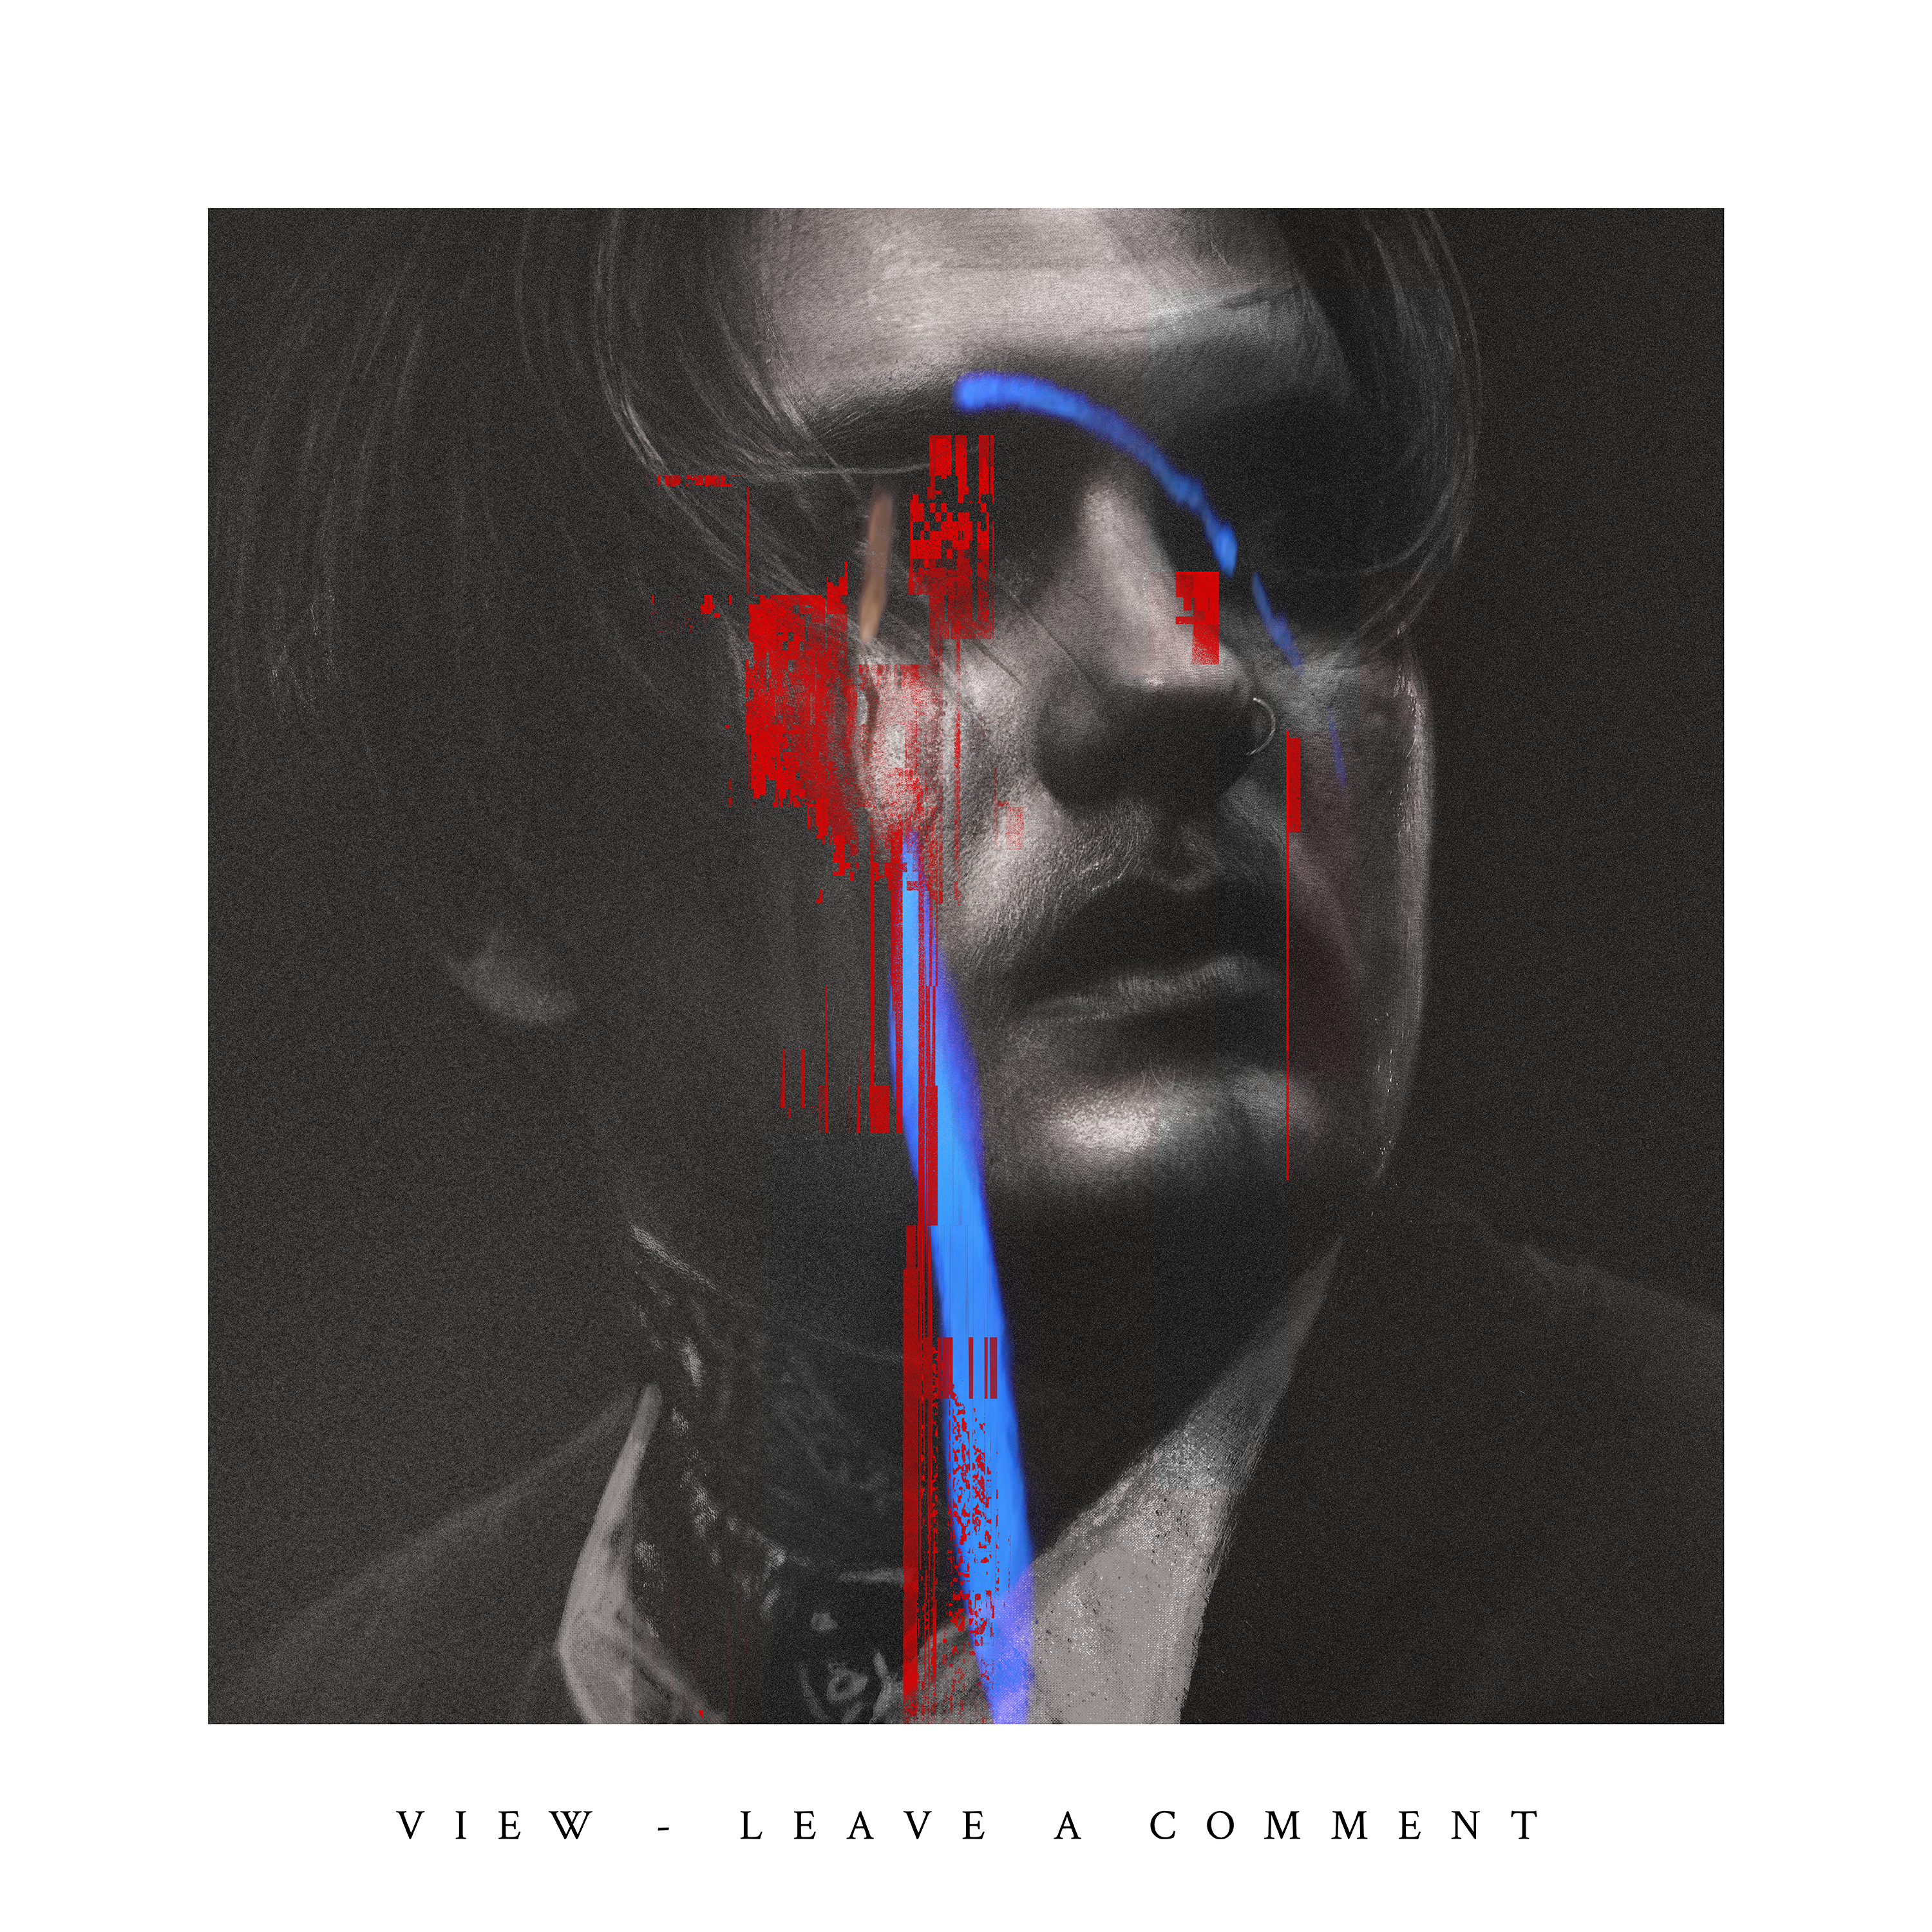 View   leave a comment cover art